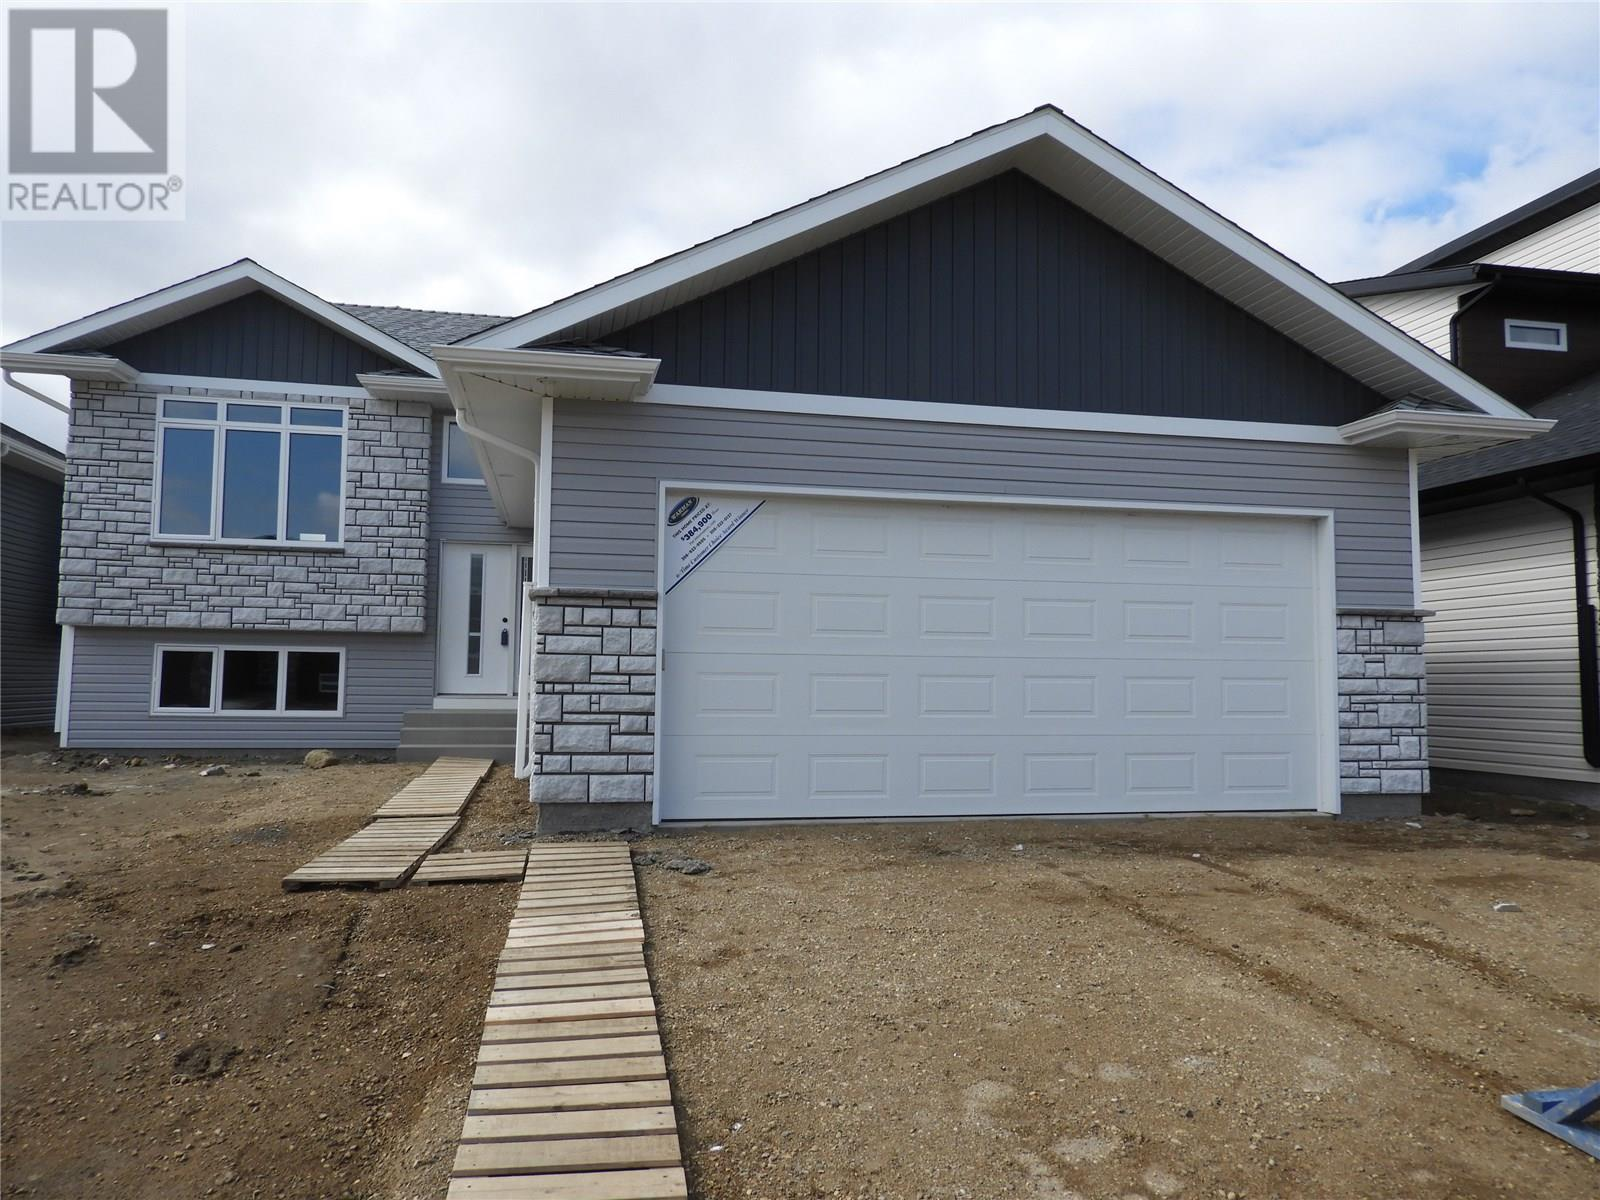 Removed: 605 Miller Way, Warman,  - Removed on 2019-05-20 06:18:06